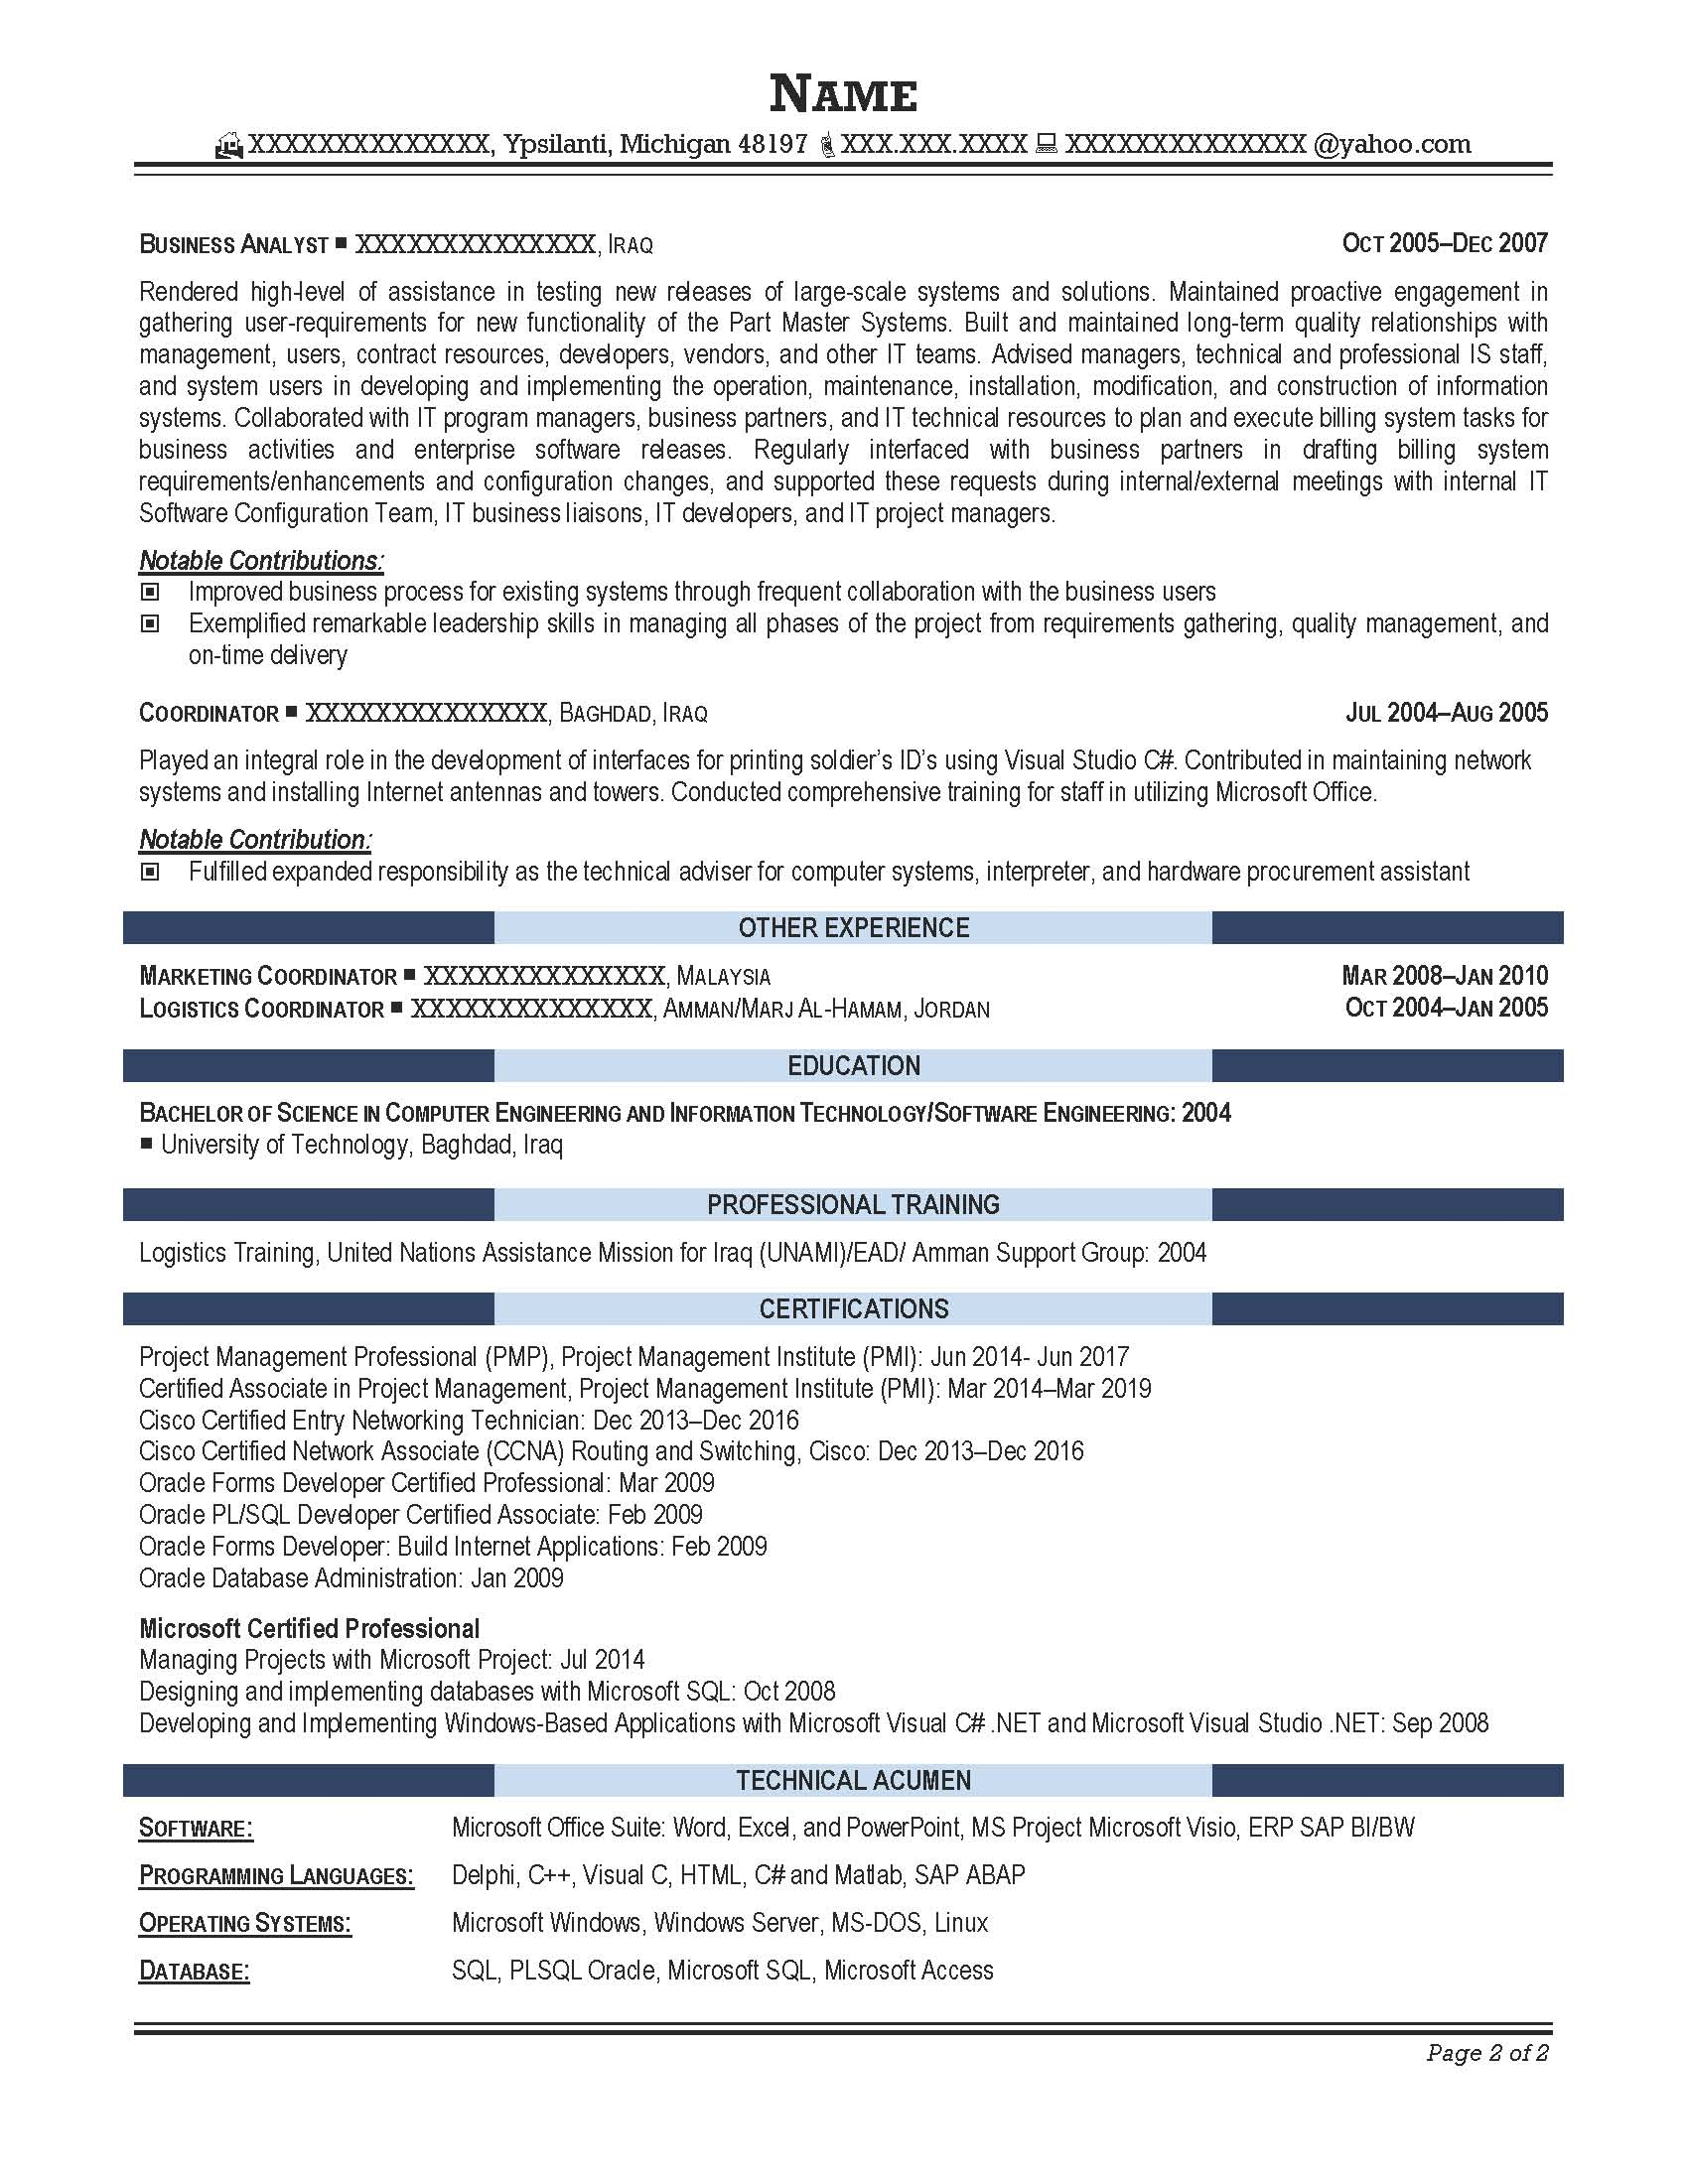 resume summary samples for business analyst best online resume resume summary samples for business analyst business analyst resume sample distinctive documents analyst resume skill resume